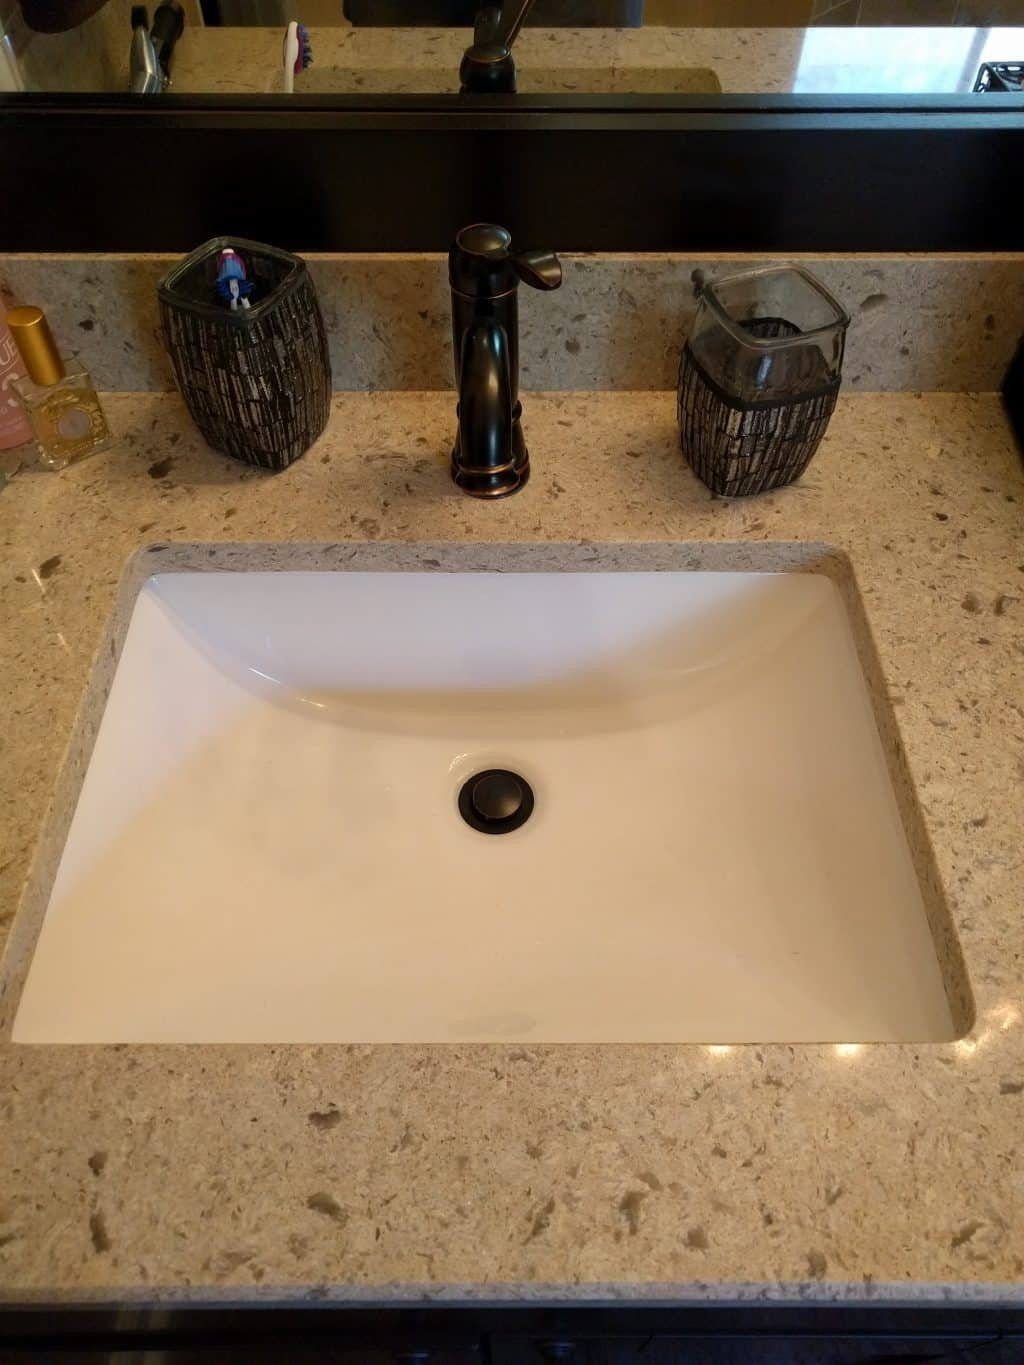 Quartz Top with Undermount Sink, Delta Faucet